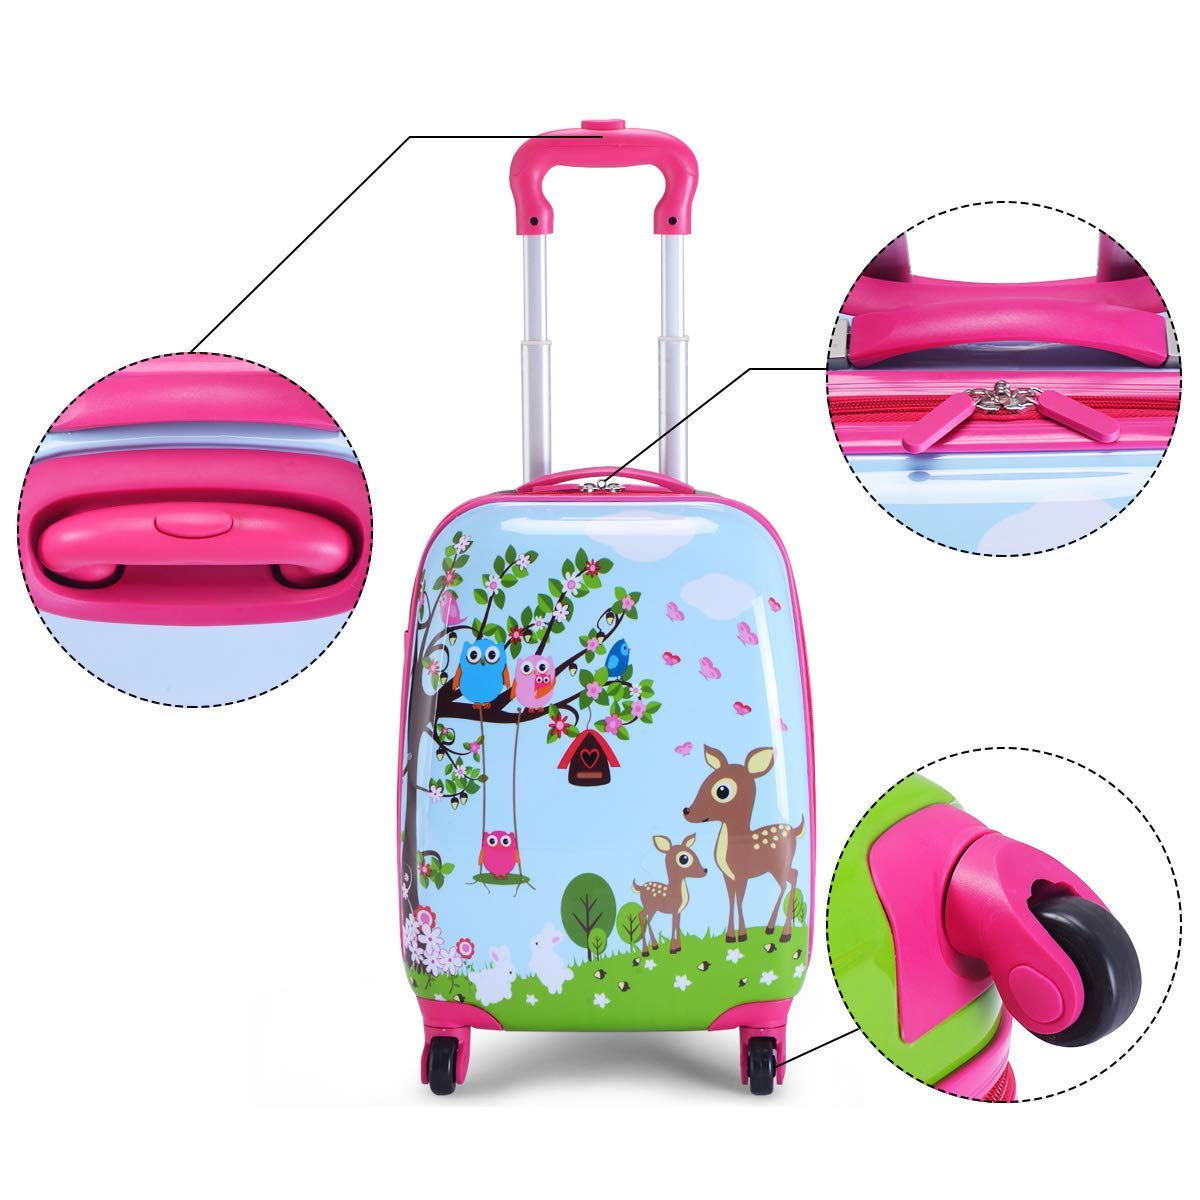 MOREFUN 2 Pcs Kids Travel Luggage Set 18'' Carry on Luggage and 13'' Backpack (Deer) by Morefun Trading (Image #3)